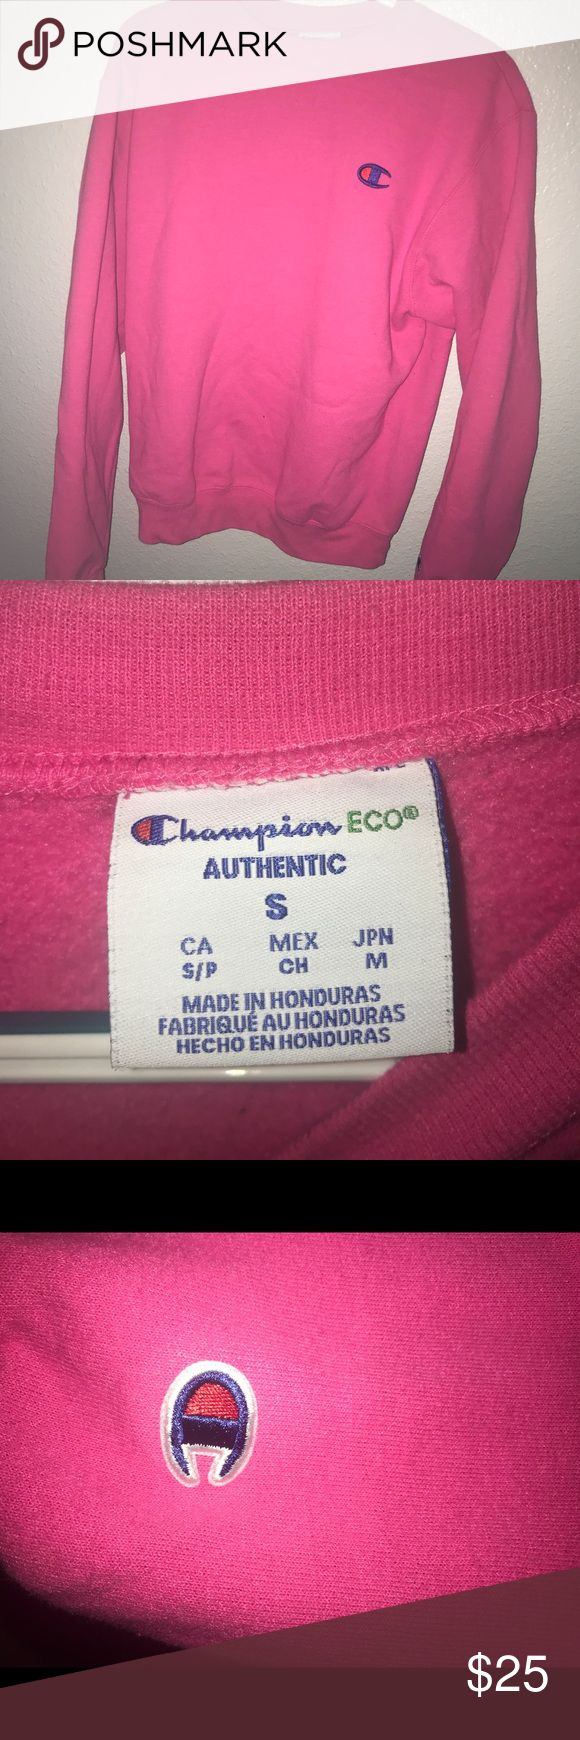 PINK CHAMPION SWEATSHIRT bright pink champion sweatshirt, super comfy, worn twice and no stains/ pulls. offers available:) Champion Tops Sweatshirts & Hoodies